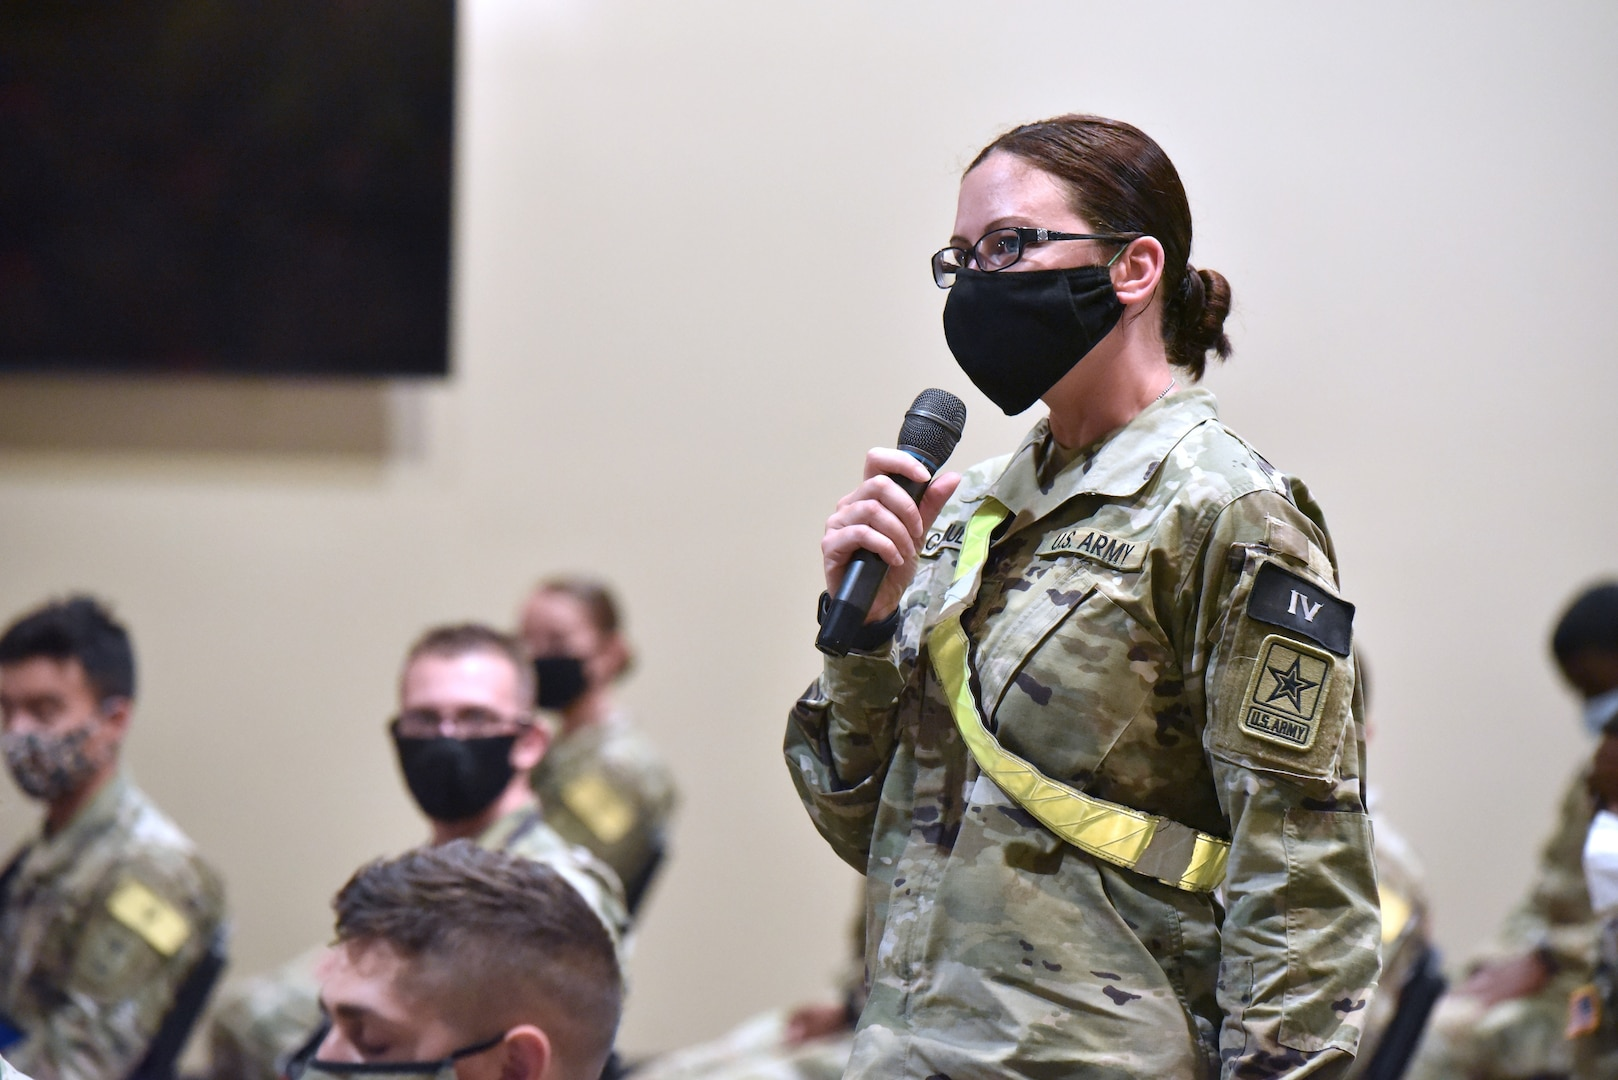 Pfc. Stacey Catmull was inspired to serve in Army Medicine after she found herself rendering aide to victims of the Las Vegas Shooting in 2017.